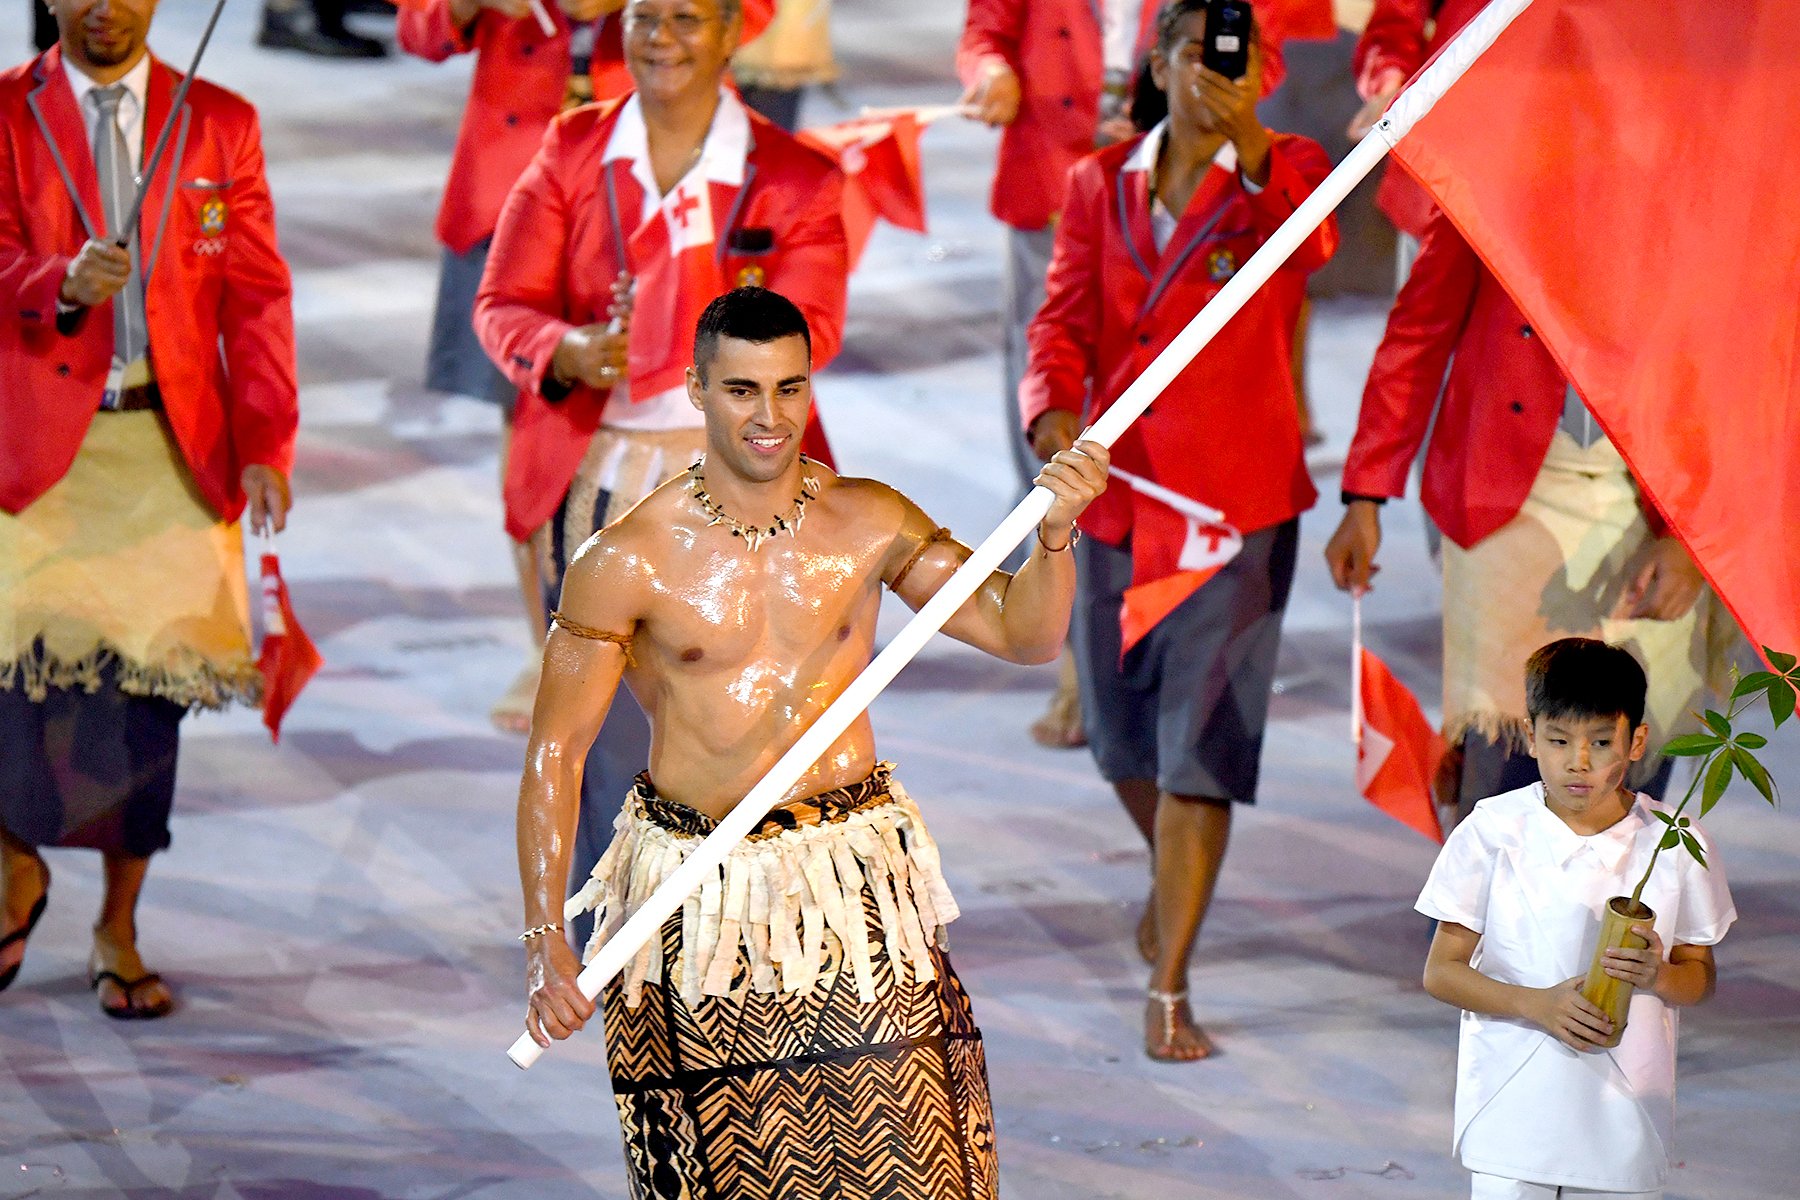 Tonga's flagbearer Pita Nikolas Taufatofua leads his delegation during the opening ceremony of the Rio 2016 Olympic Games at the Maracana stadium in Rio de Janeiro on August 5, 2016.